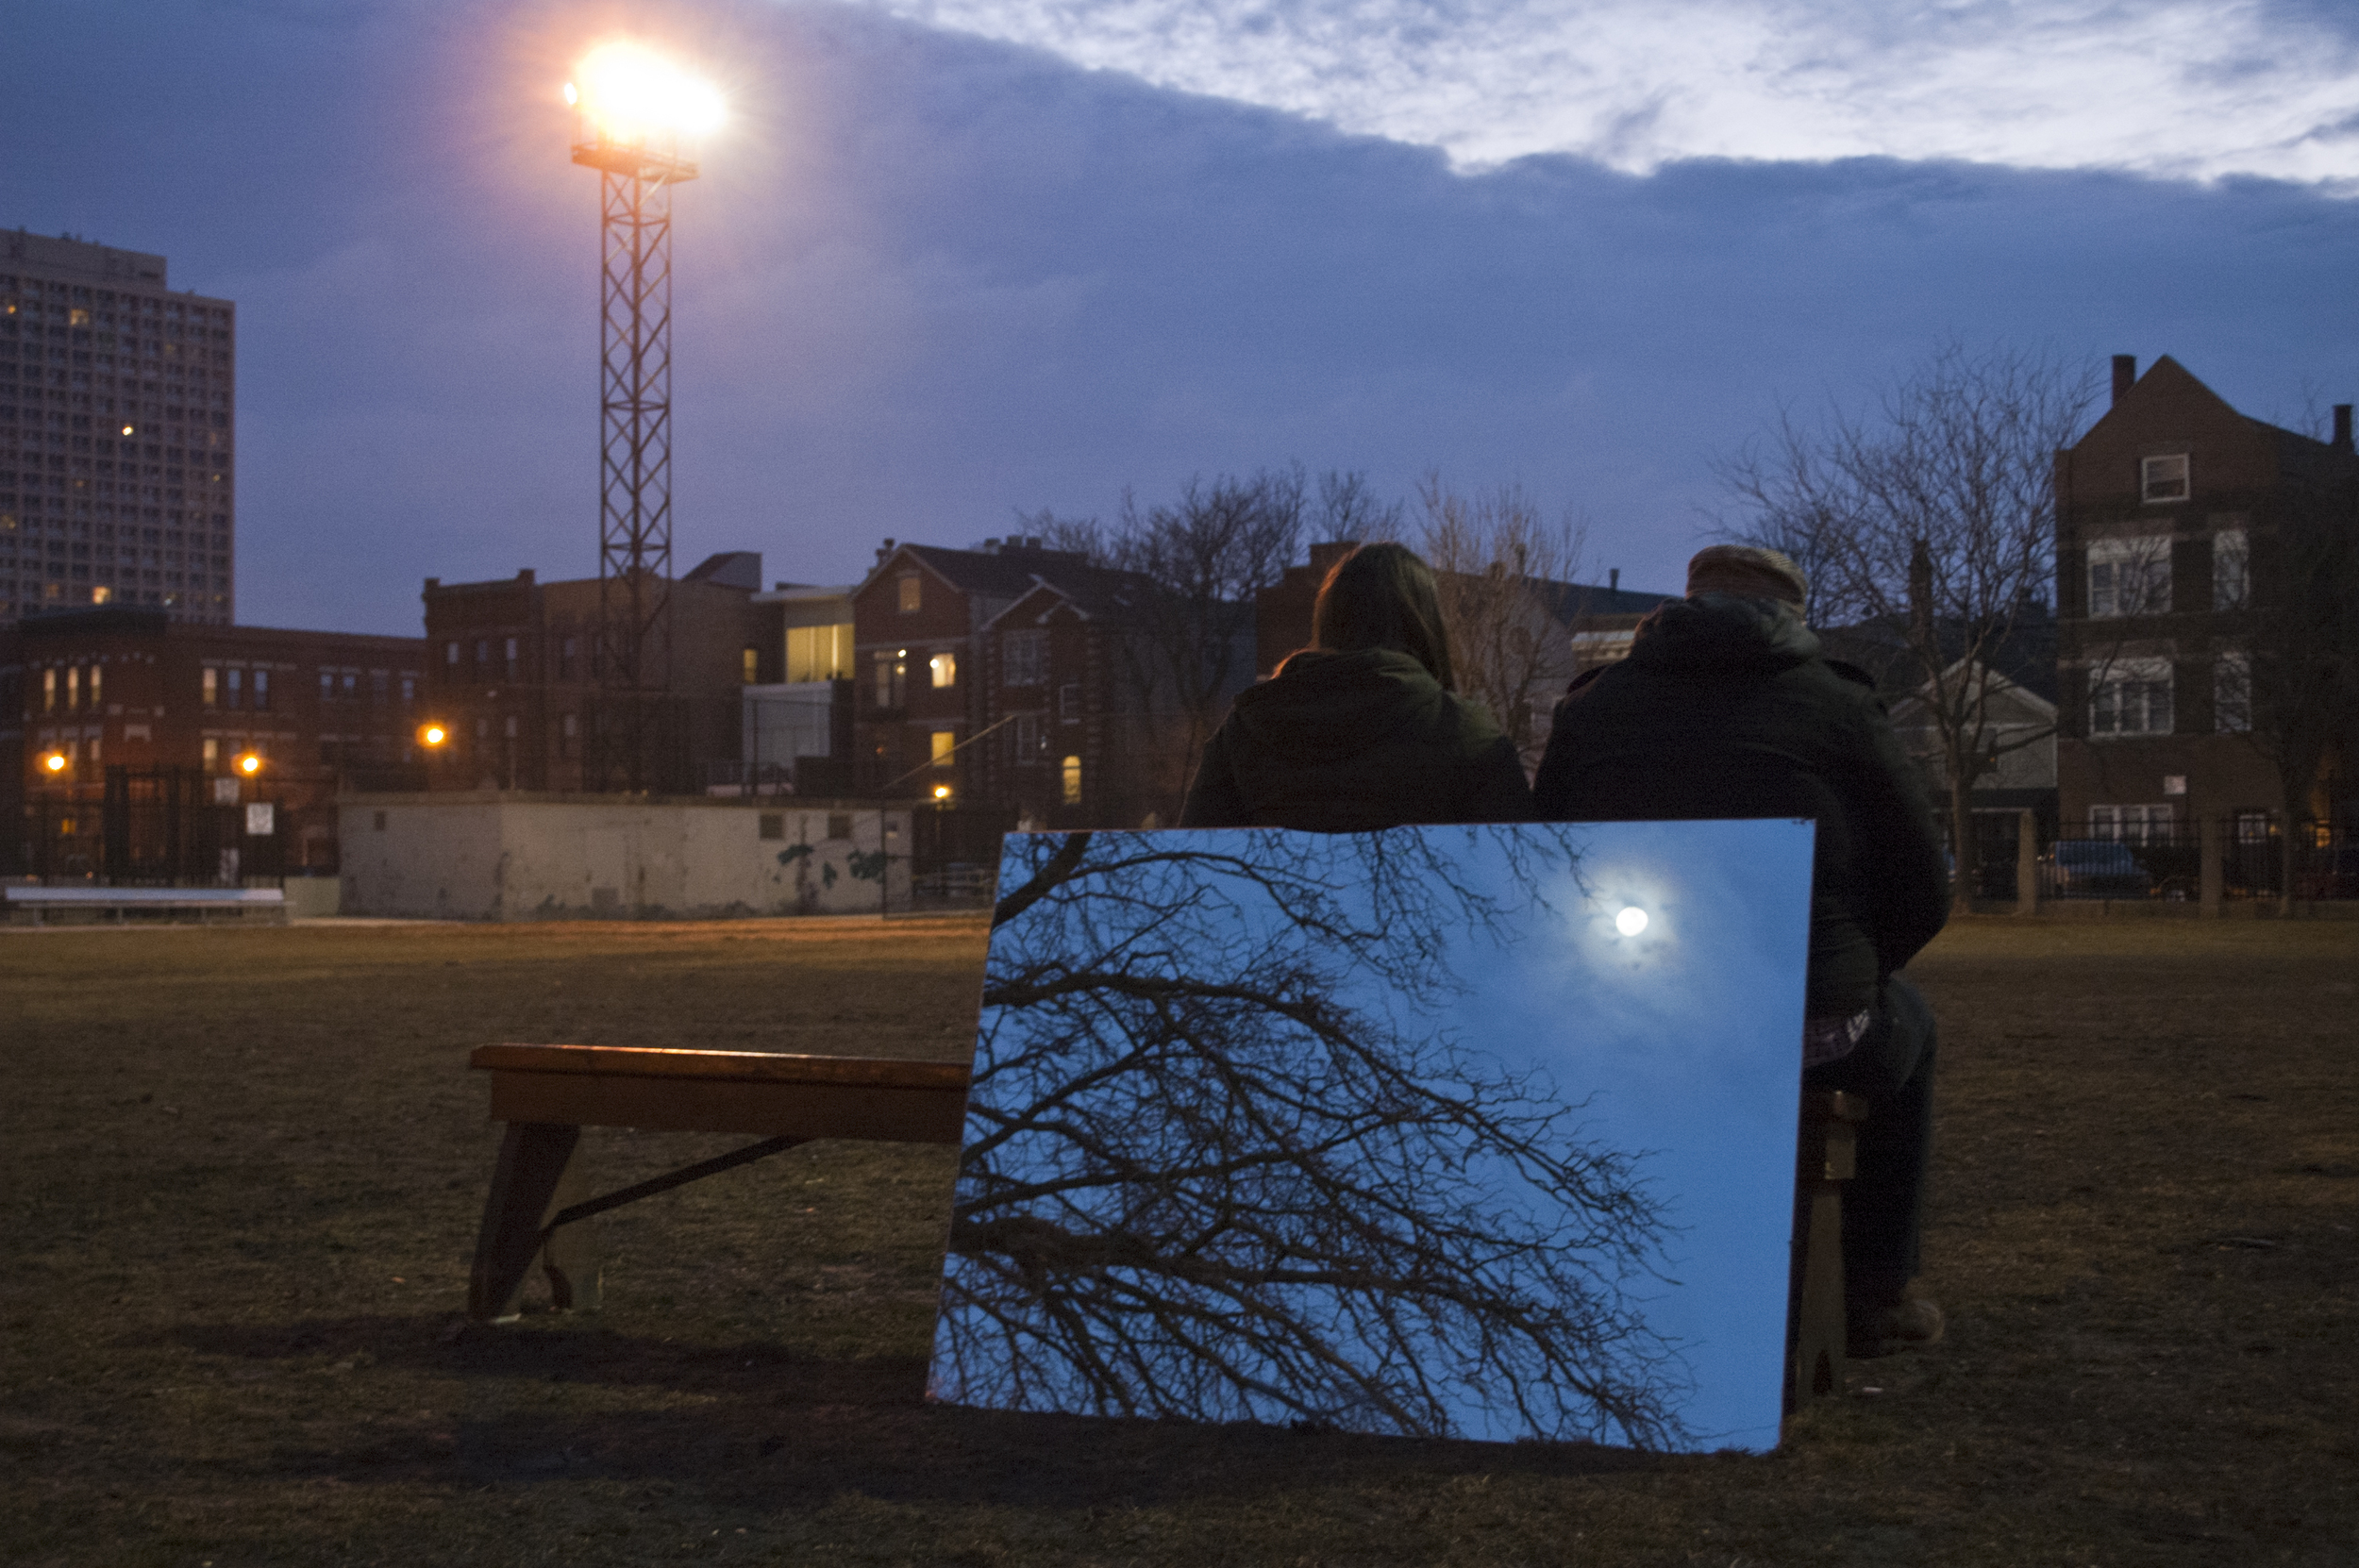 Acts upon us, reprise 2:46 hr, mirror, wooden bench, 2012. installation view: 24th Festival of Art in Alternative & Itinerant Spaces, Chicago IL Photography by Josh Korby  more info:  Acts upon us